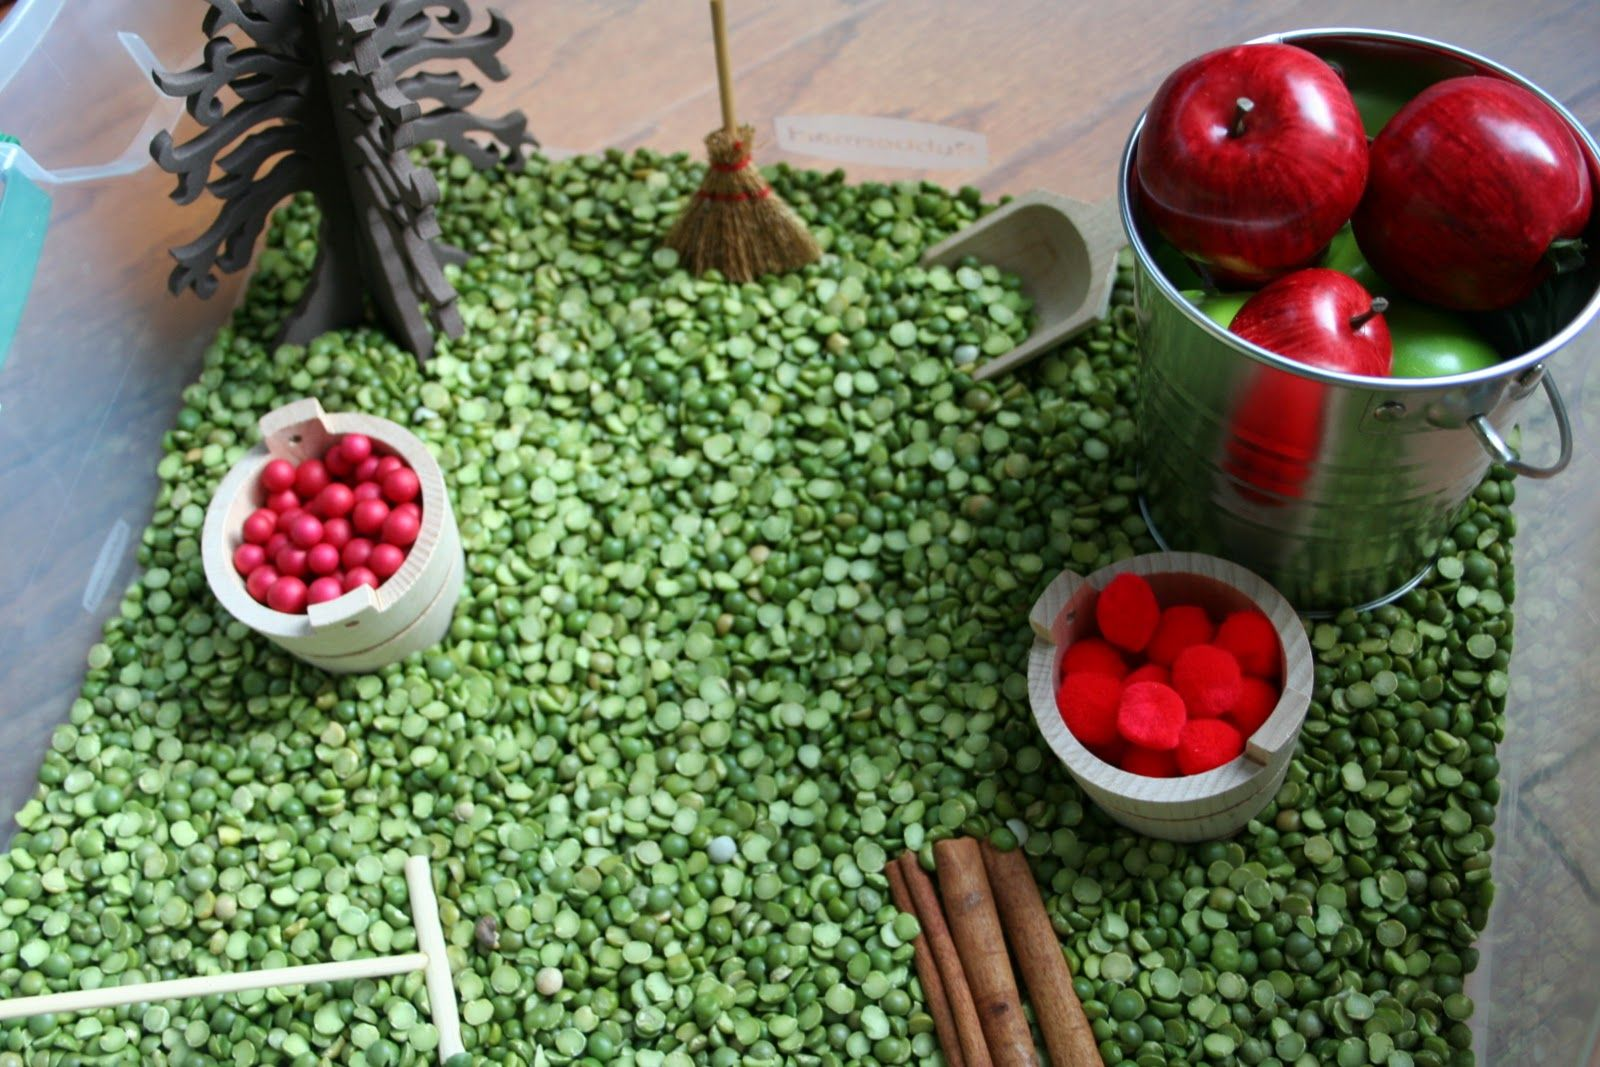 Apple Themed Sensory Bin W Split Peas